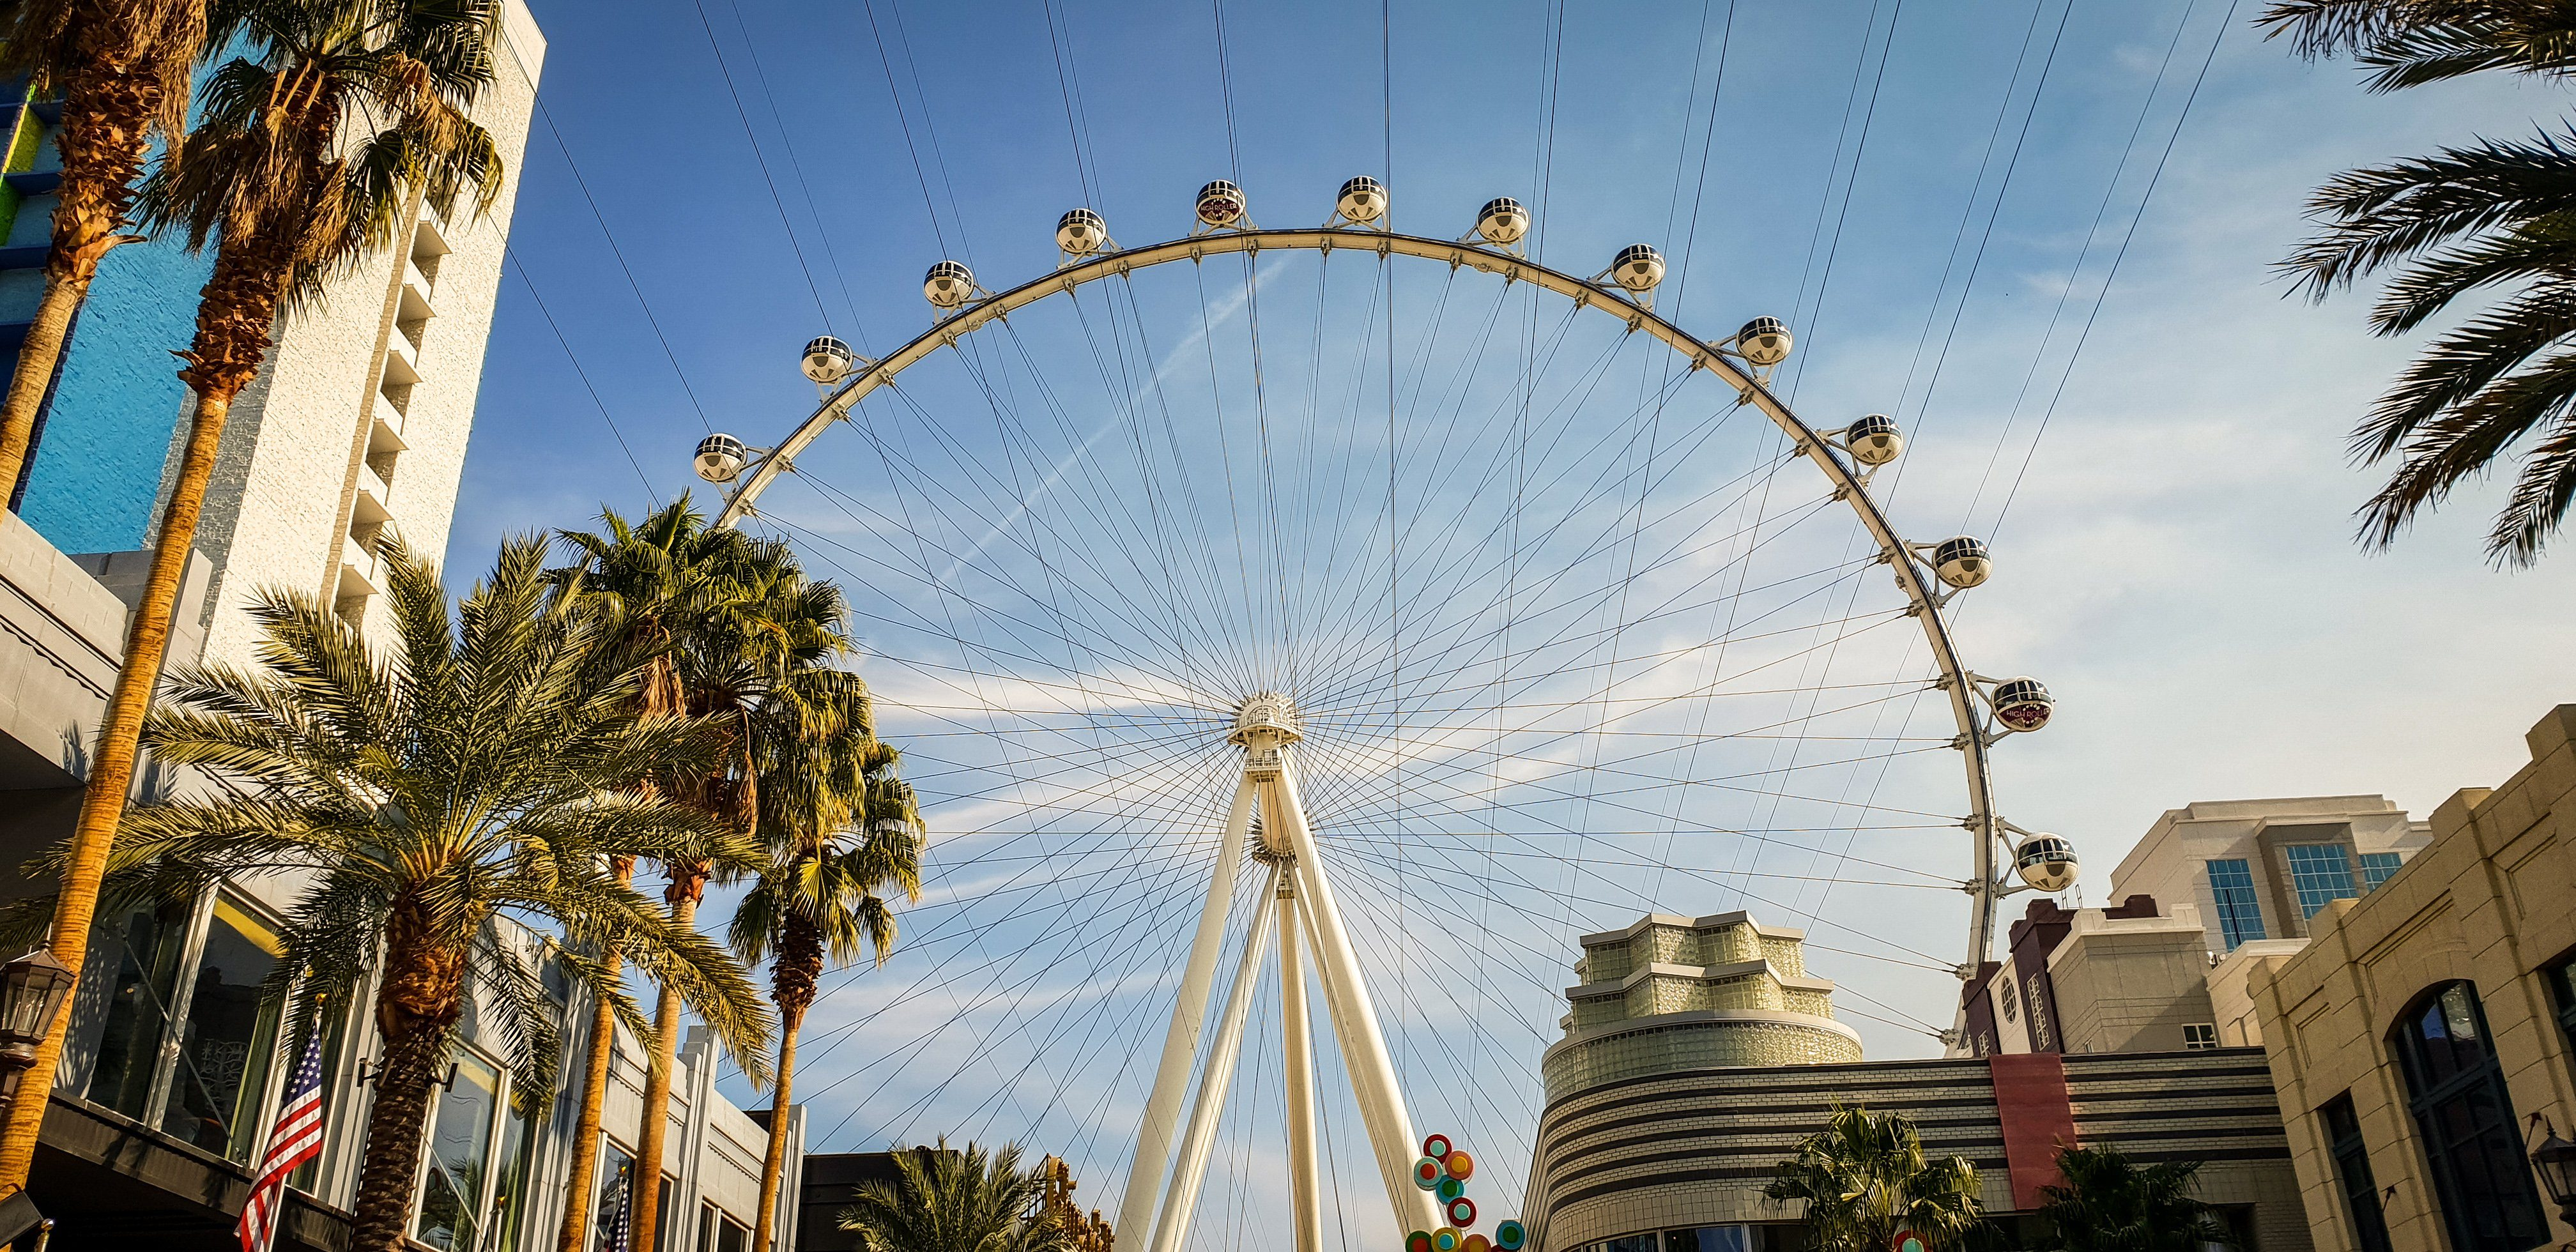 The High Roller, Las Vegas, Nevada from the Linq